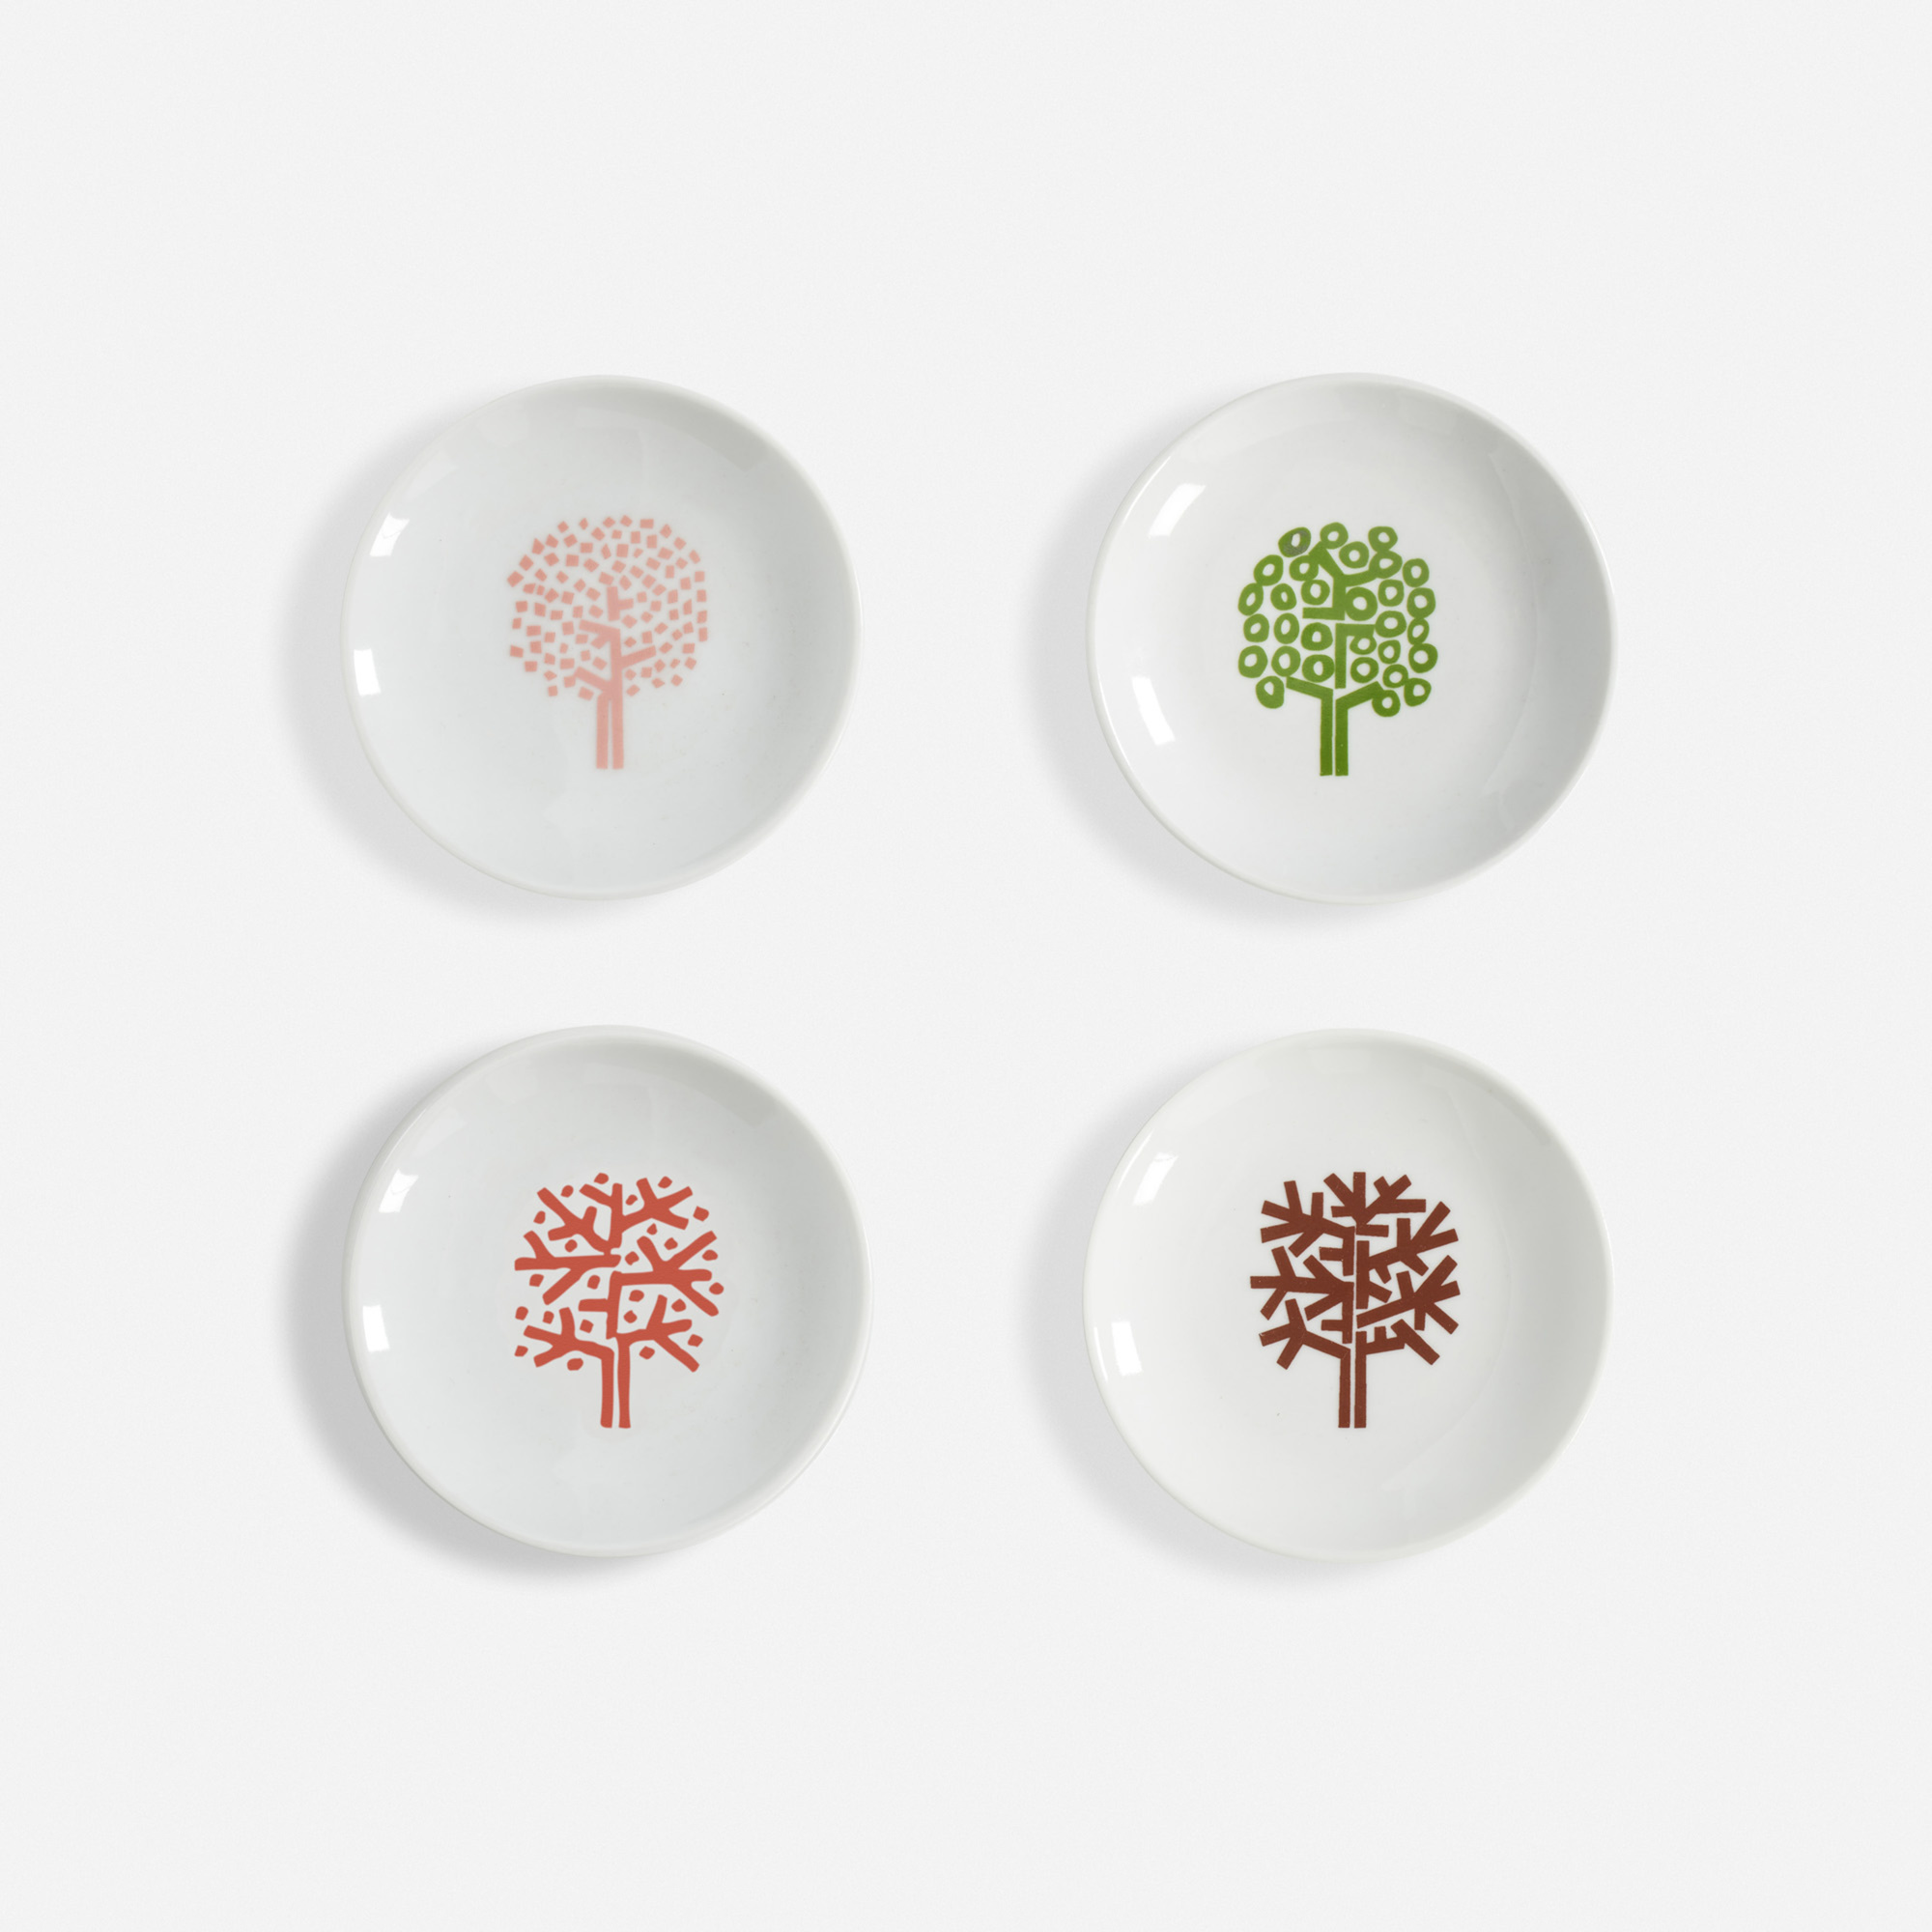 138:  / Four Seasons ashtrays, set of four (1 of 1)